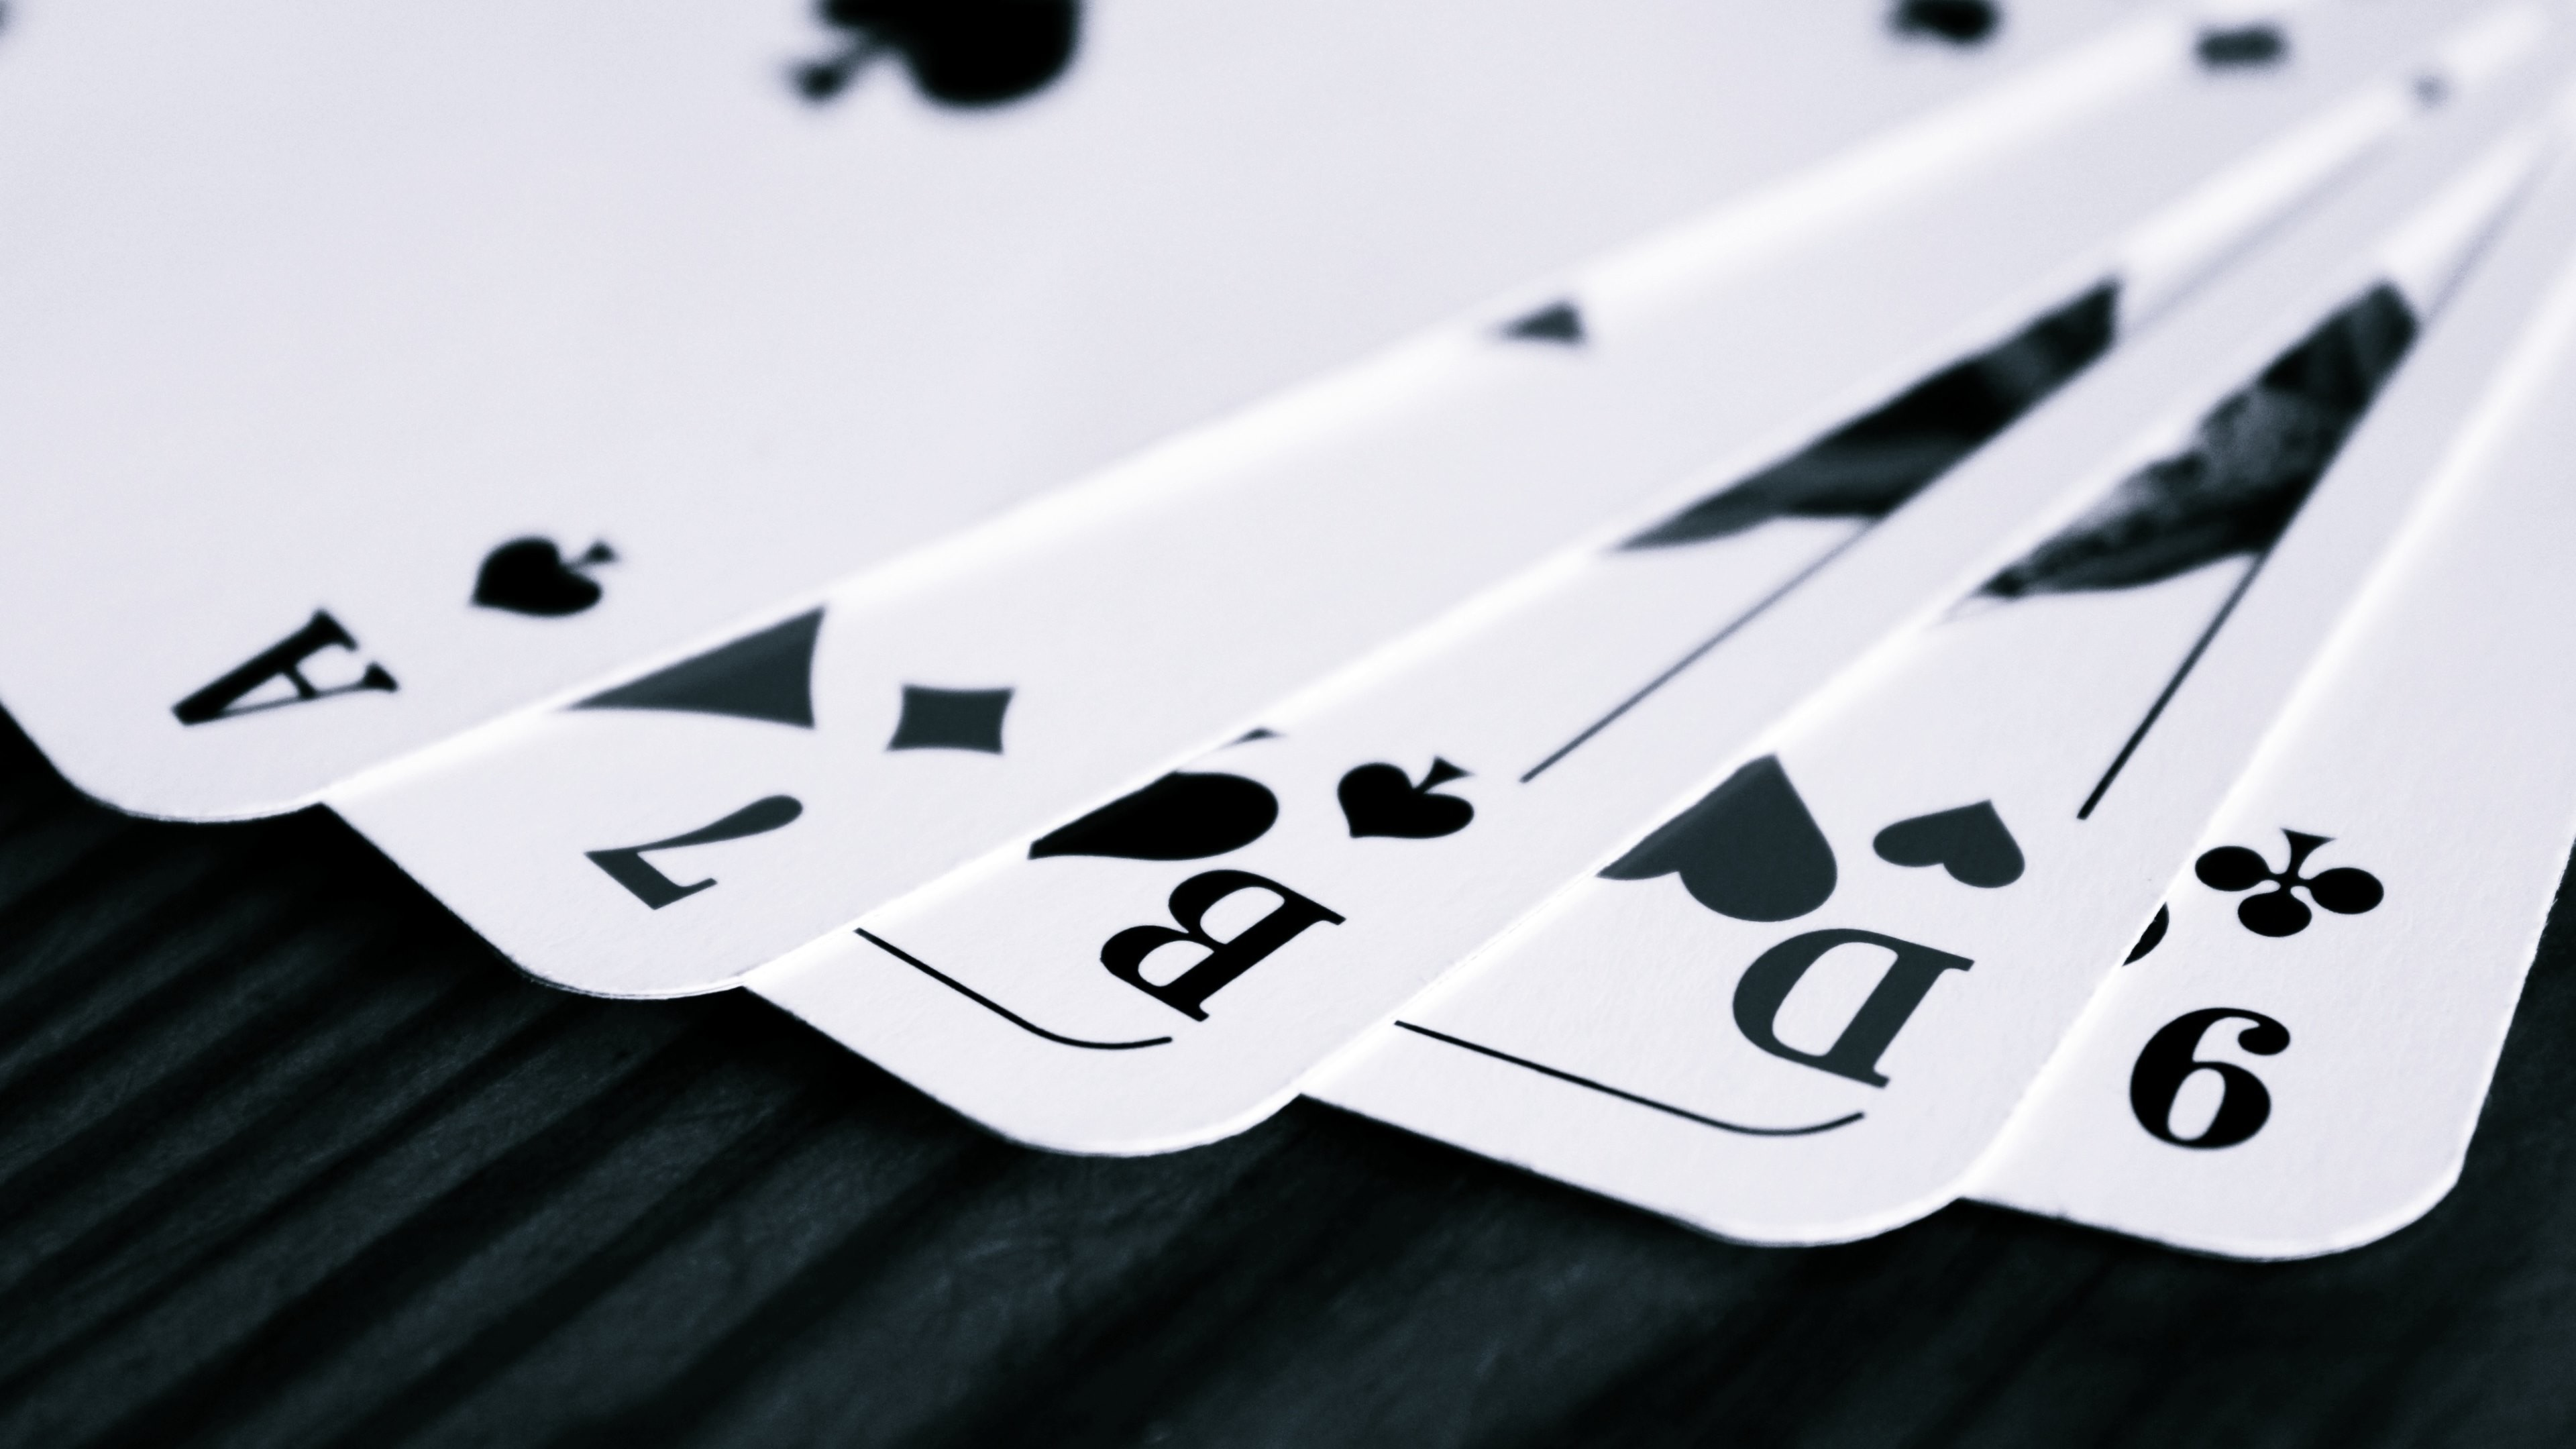 Wallpaper: Game Cards in Black and White. Ultra HD 4K 3840×2160